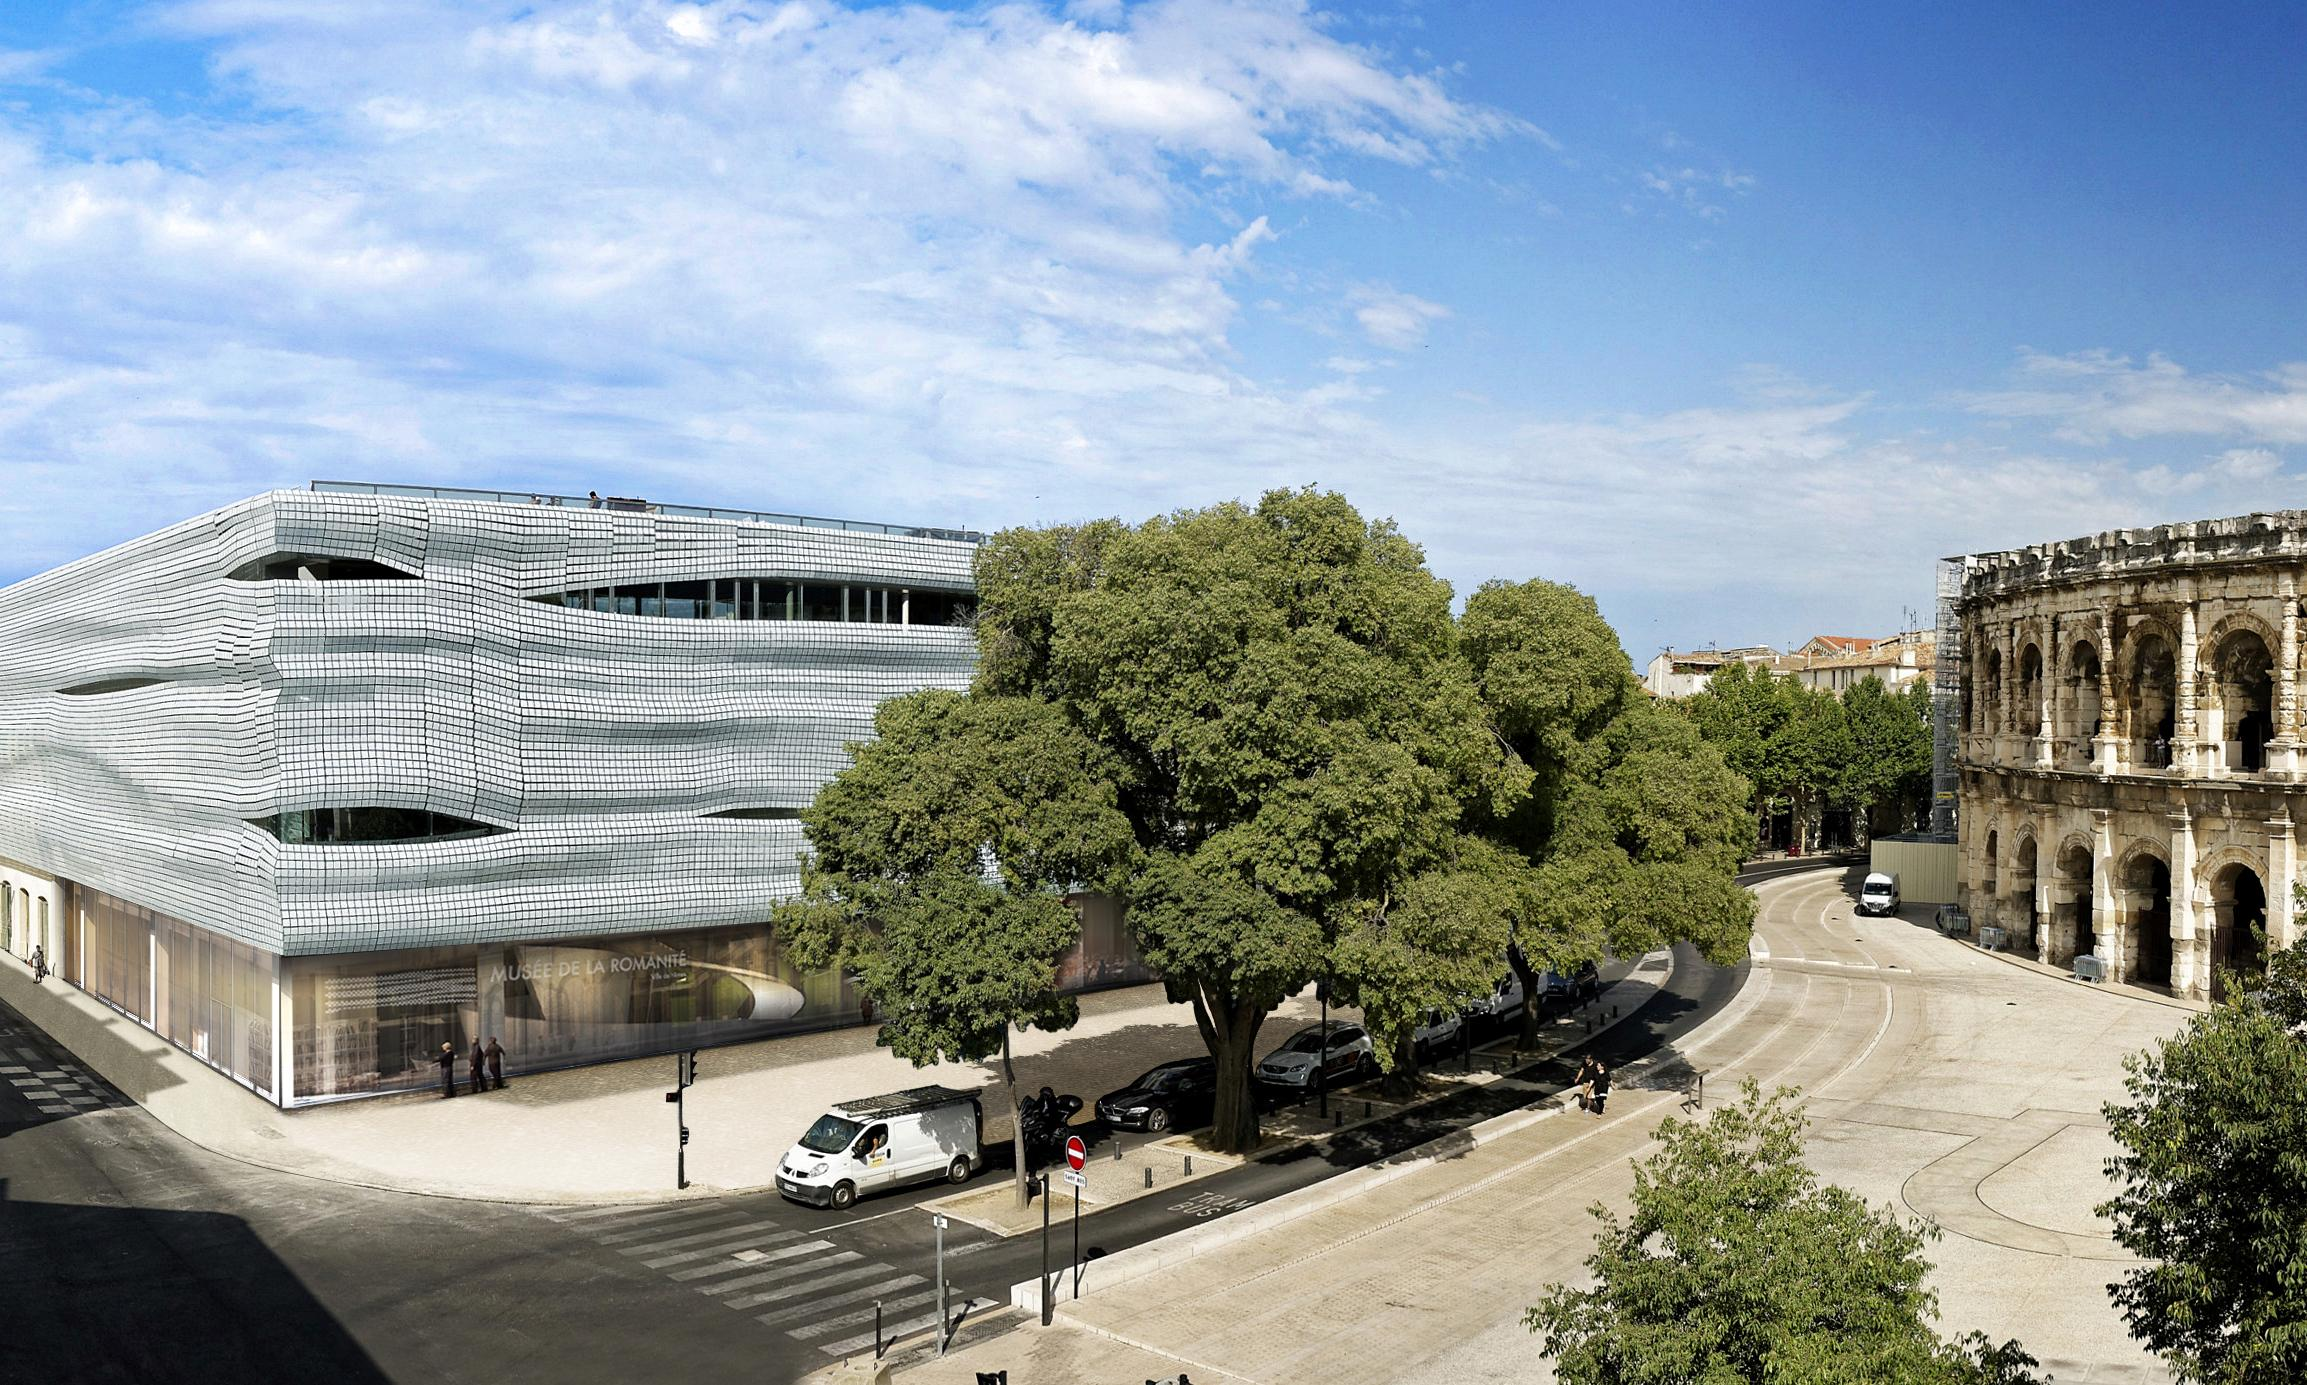 Nîmes' stunning new Roman museum dazzles in a glass 'toga'